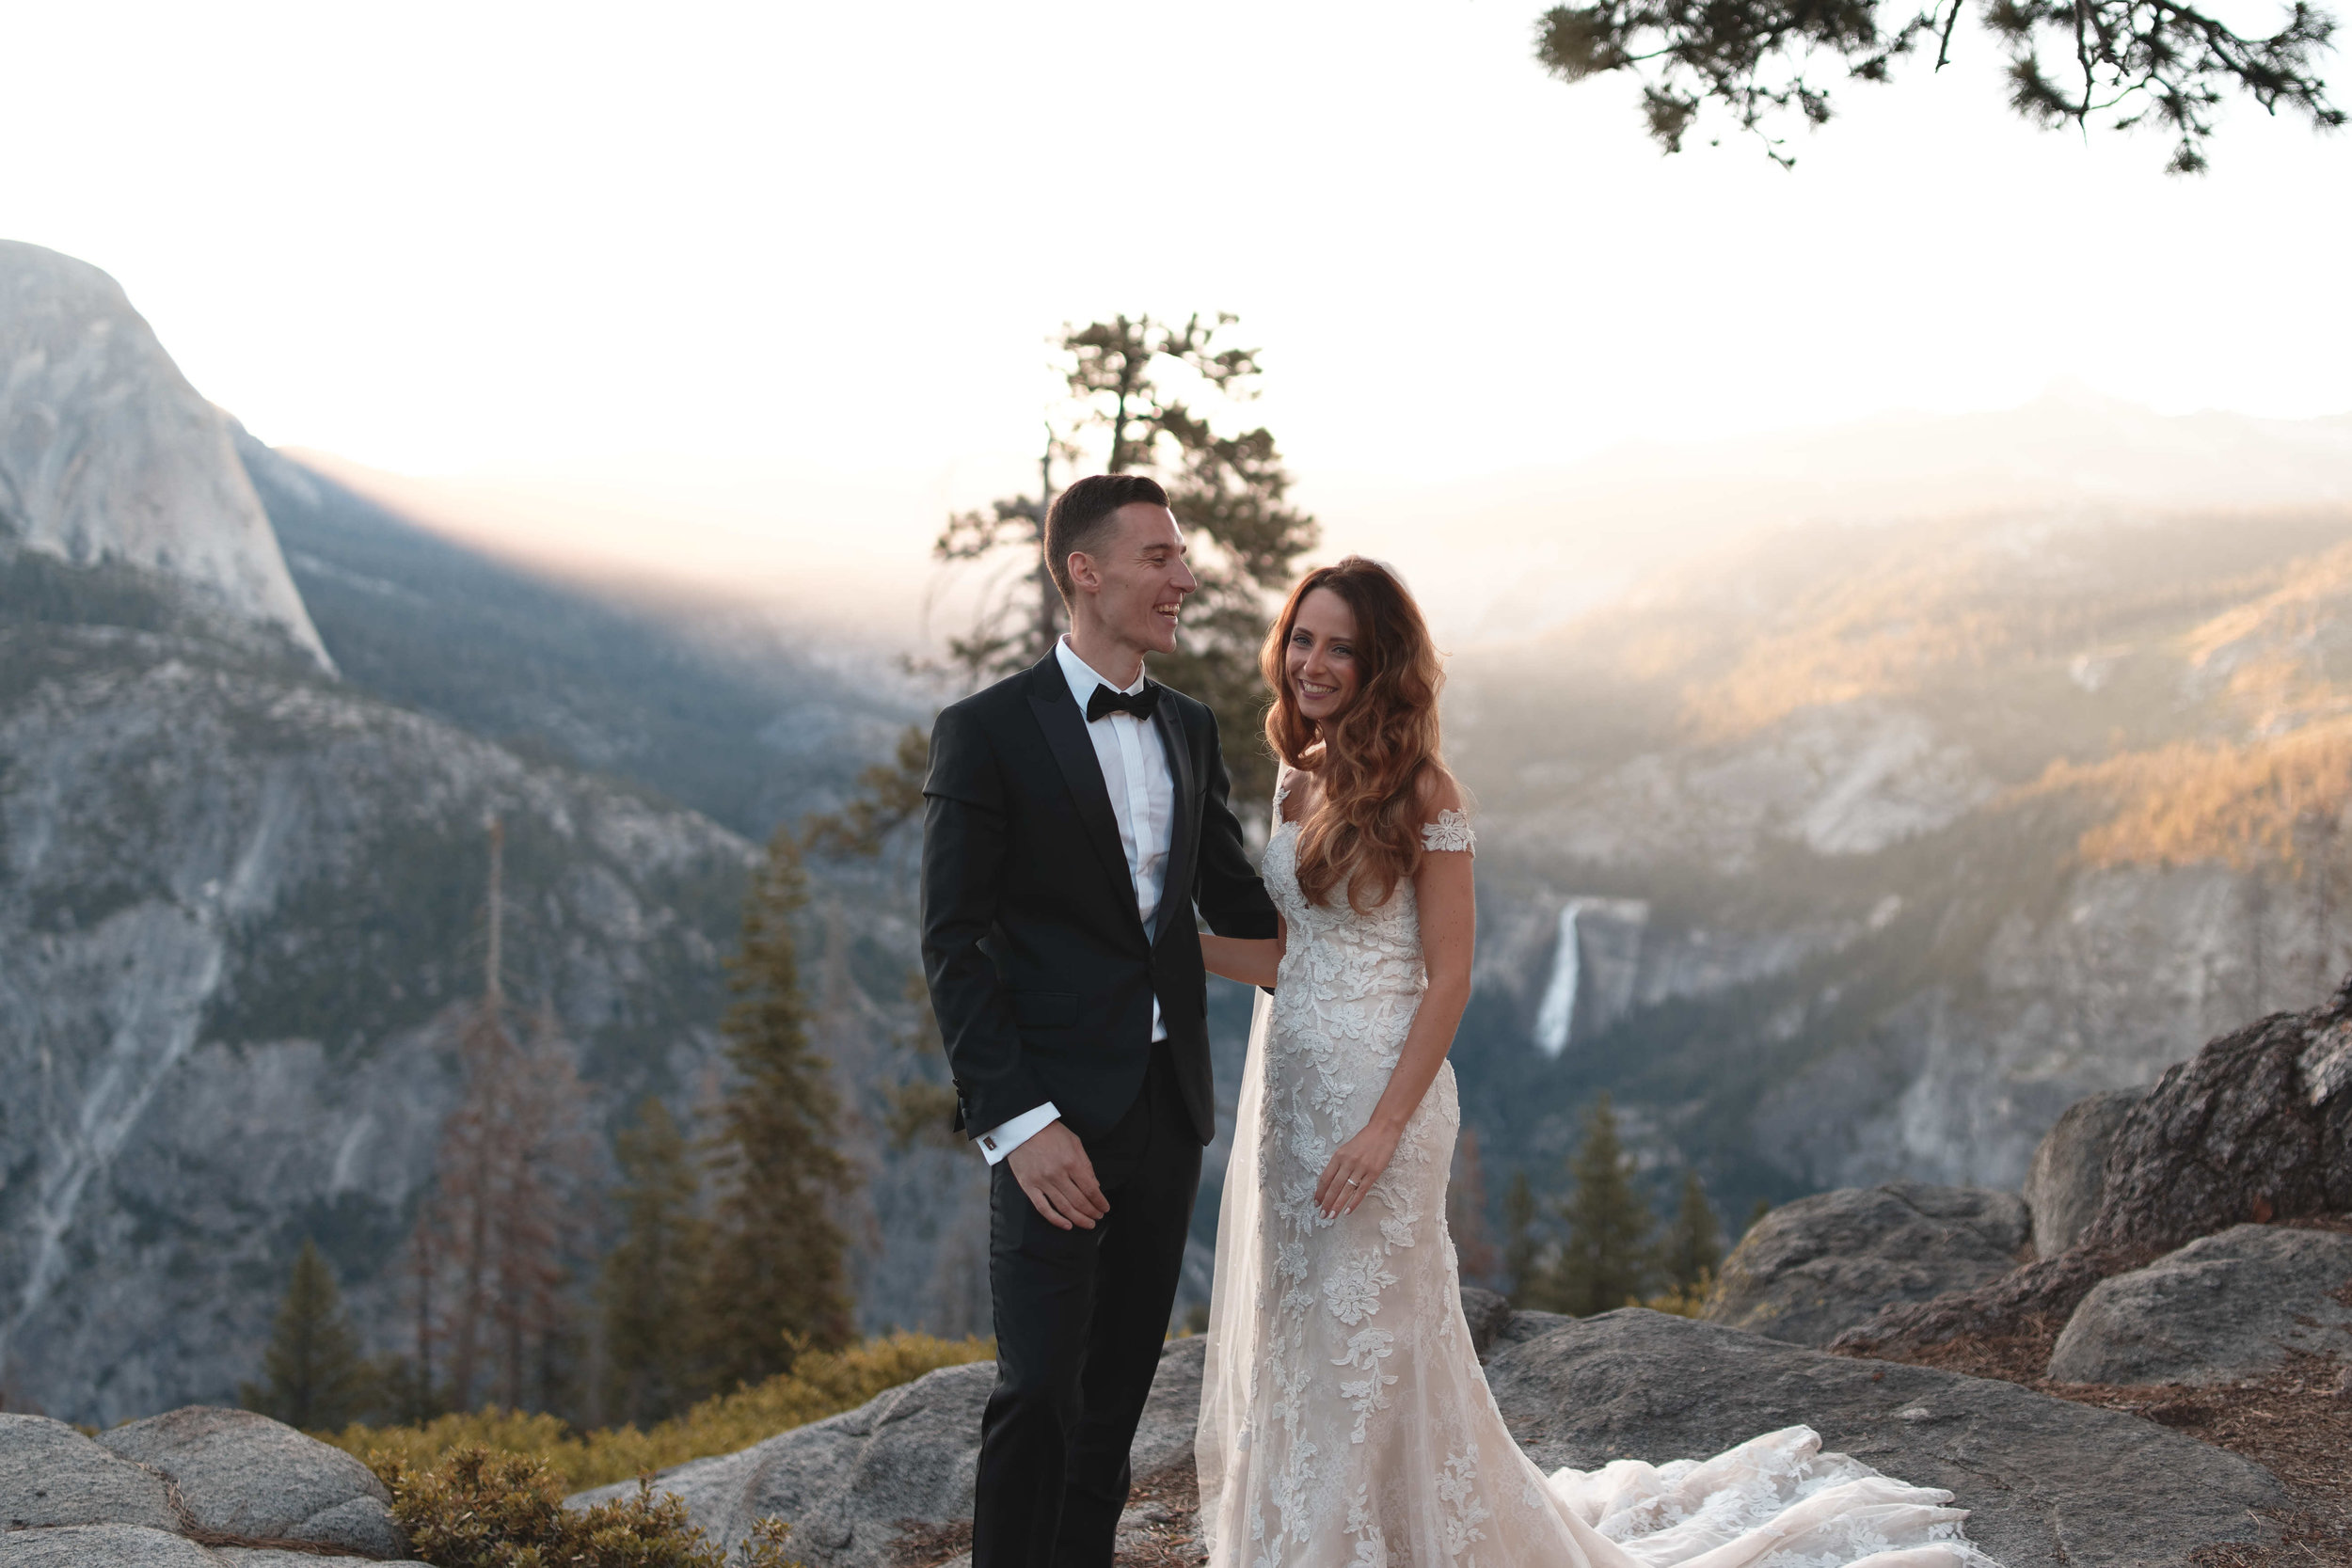 yosemite-adventure-wedding-amyjames (15).jpg